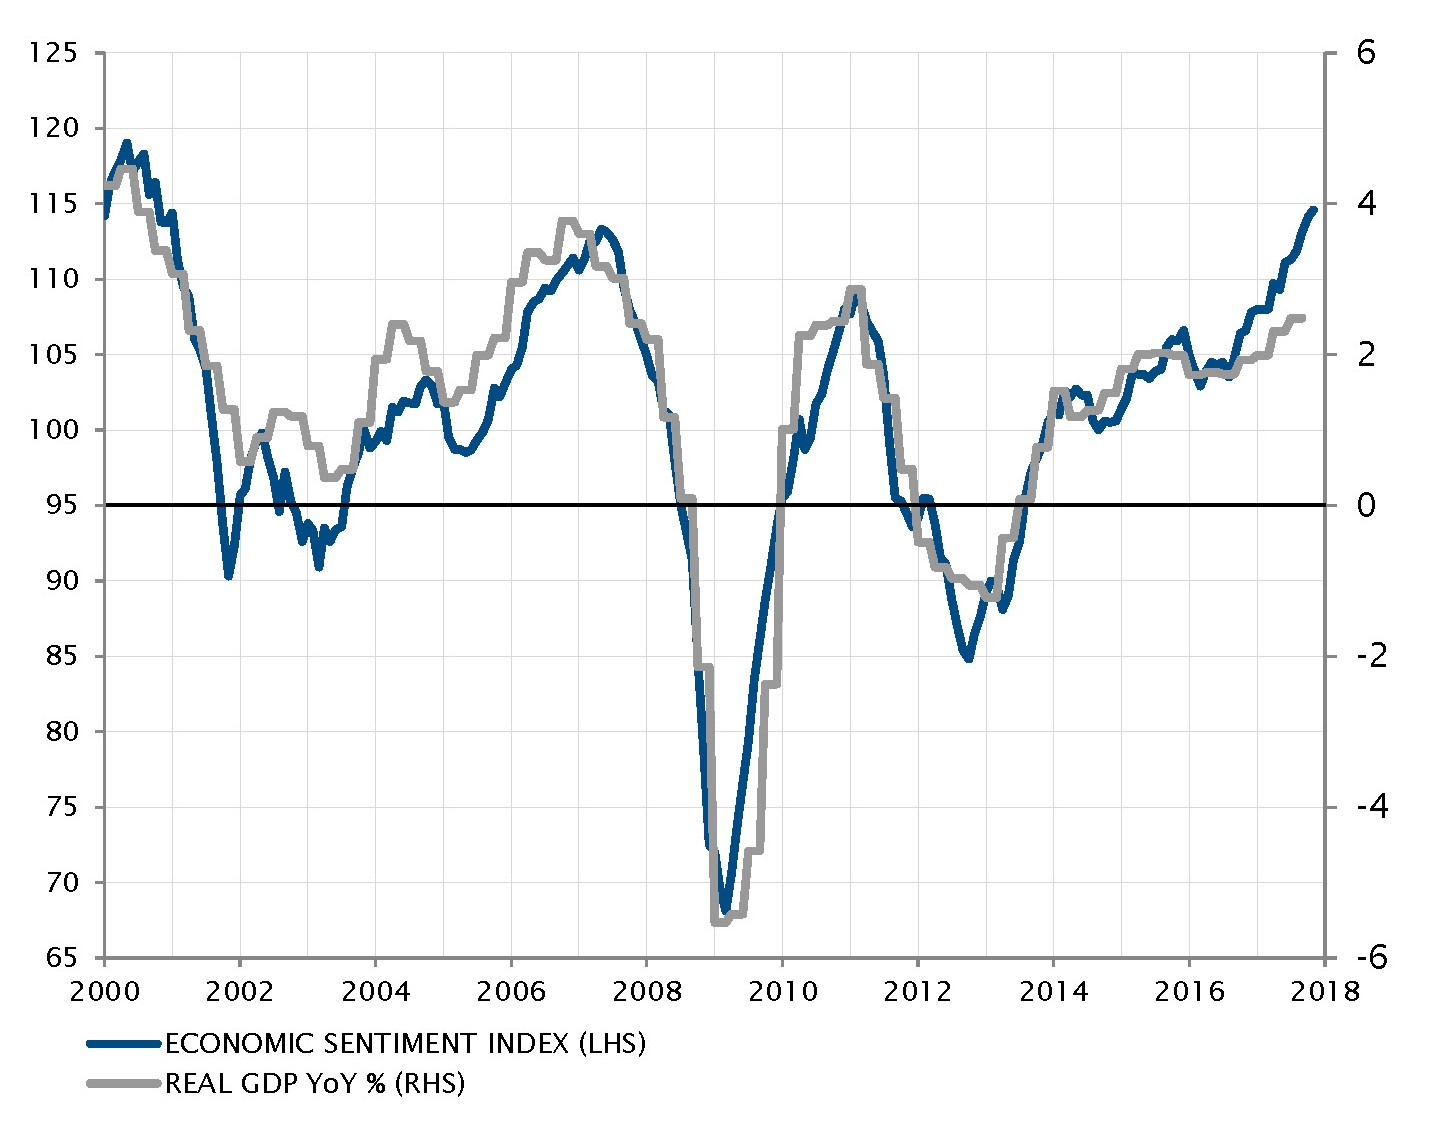 Eurozone economic sentiment and activity keep surprising positively